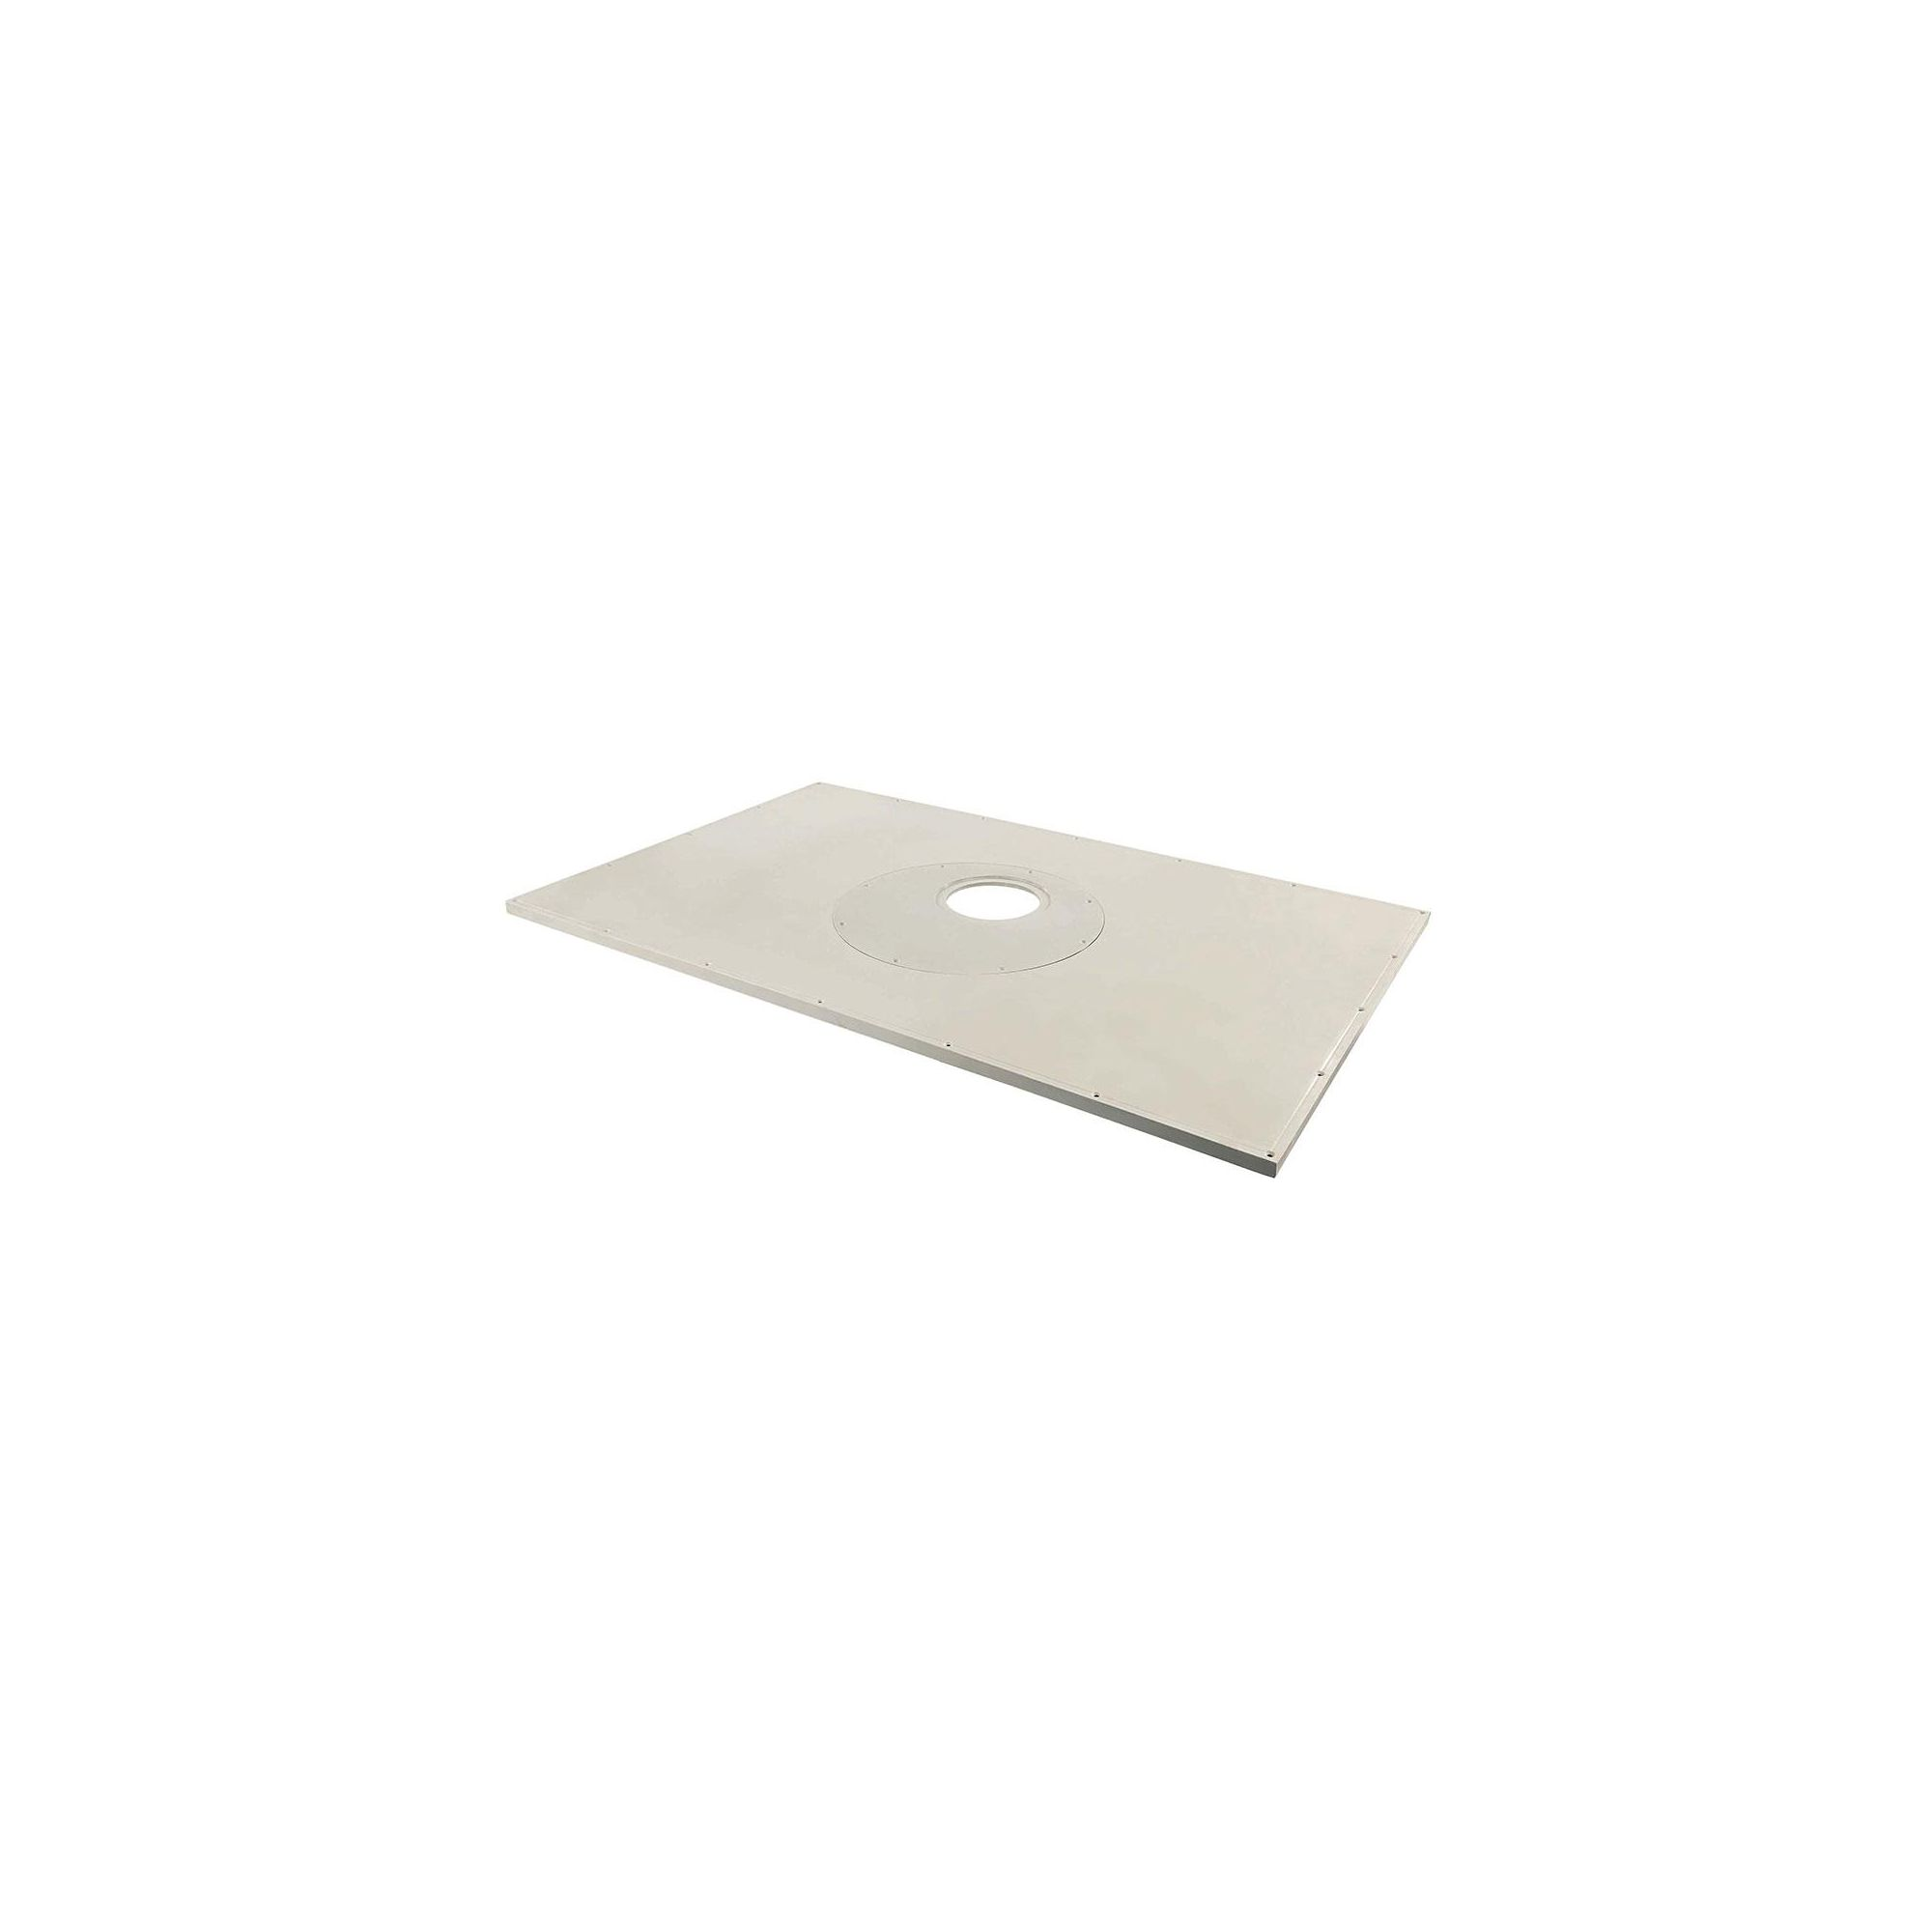 Impey Level-Dec Advance Wet Room Floor Former 1050mm x 1050mm at Tesco Direct